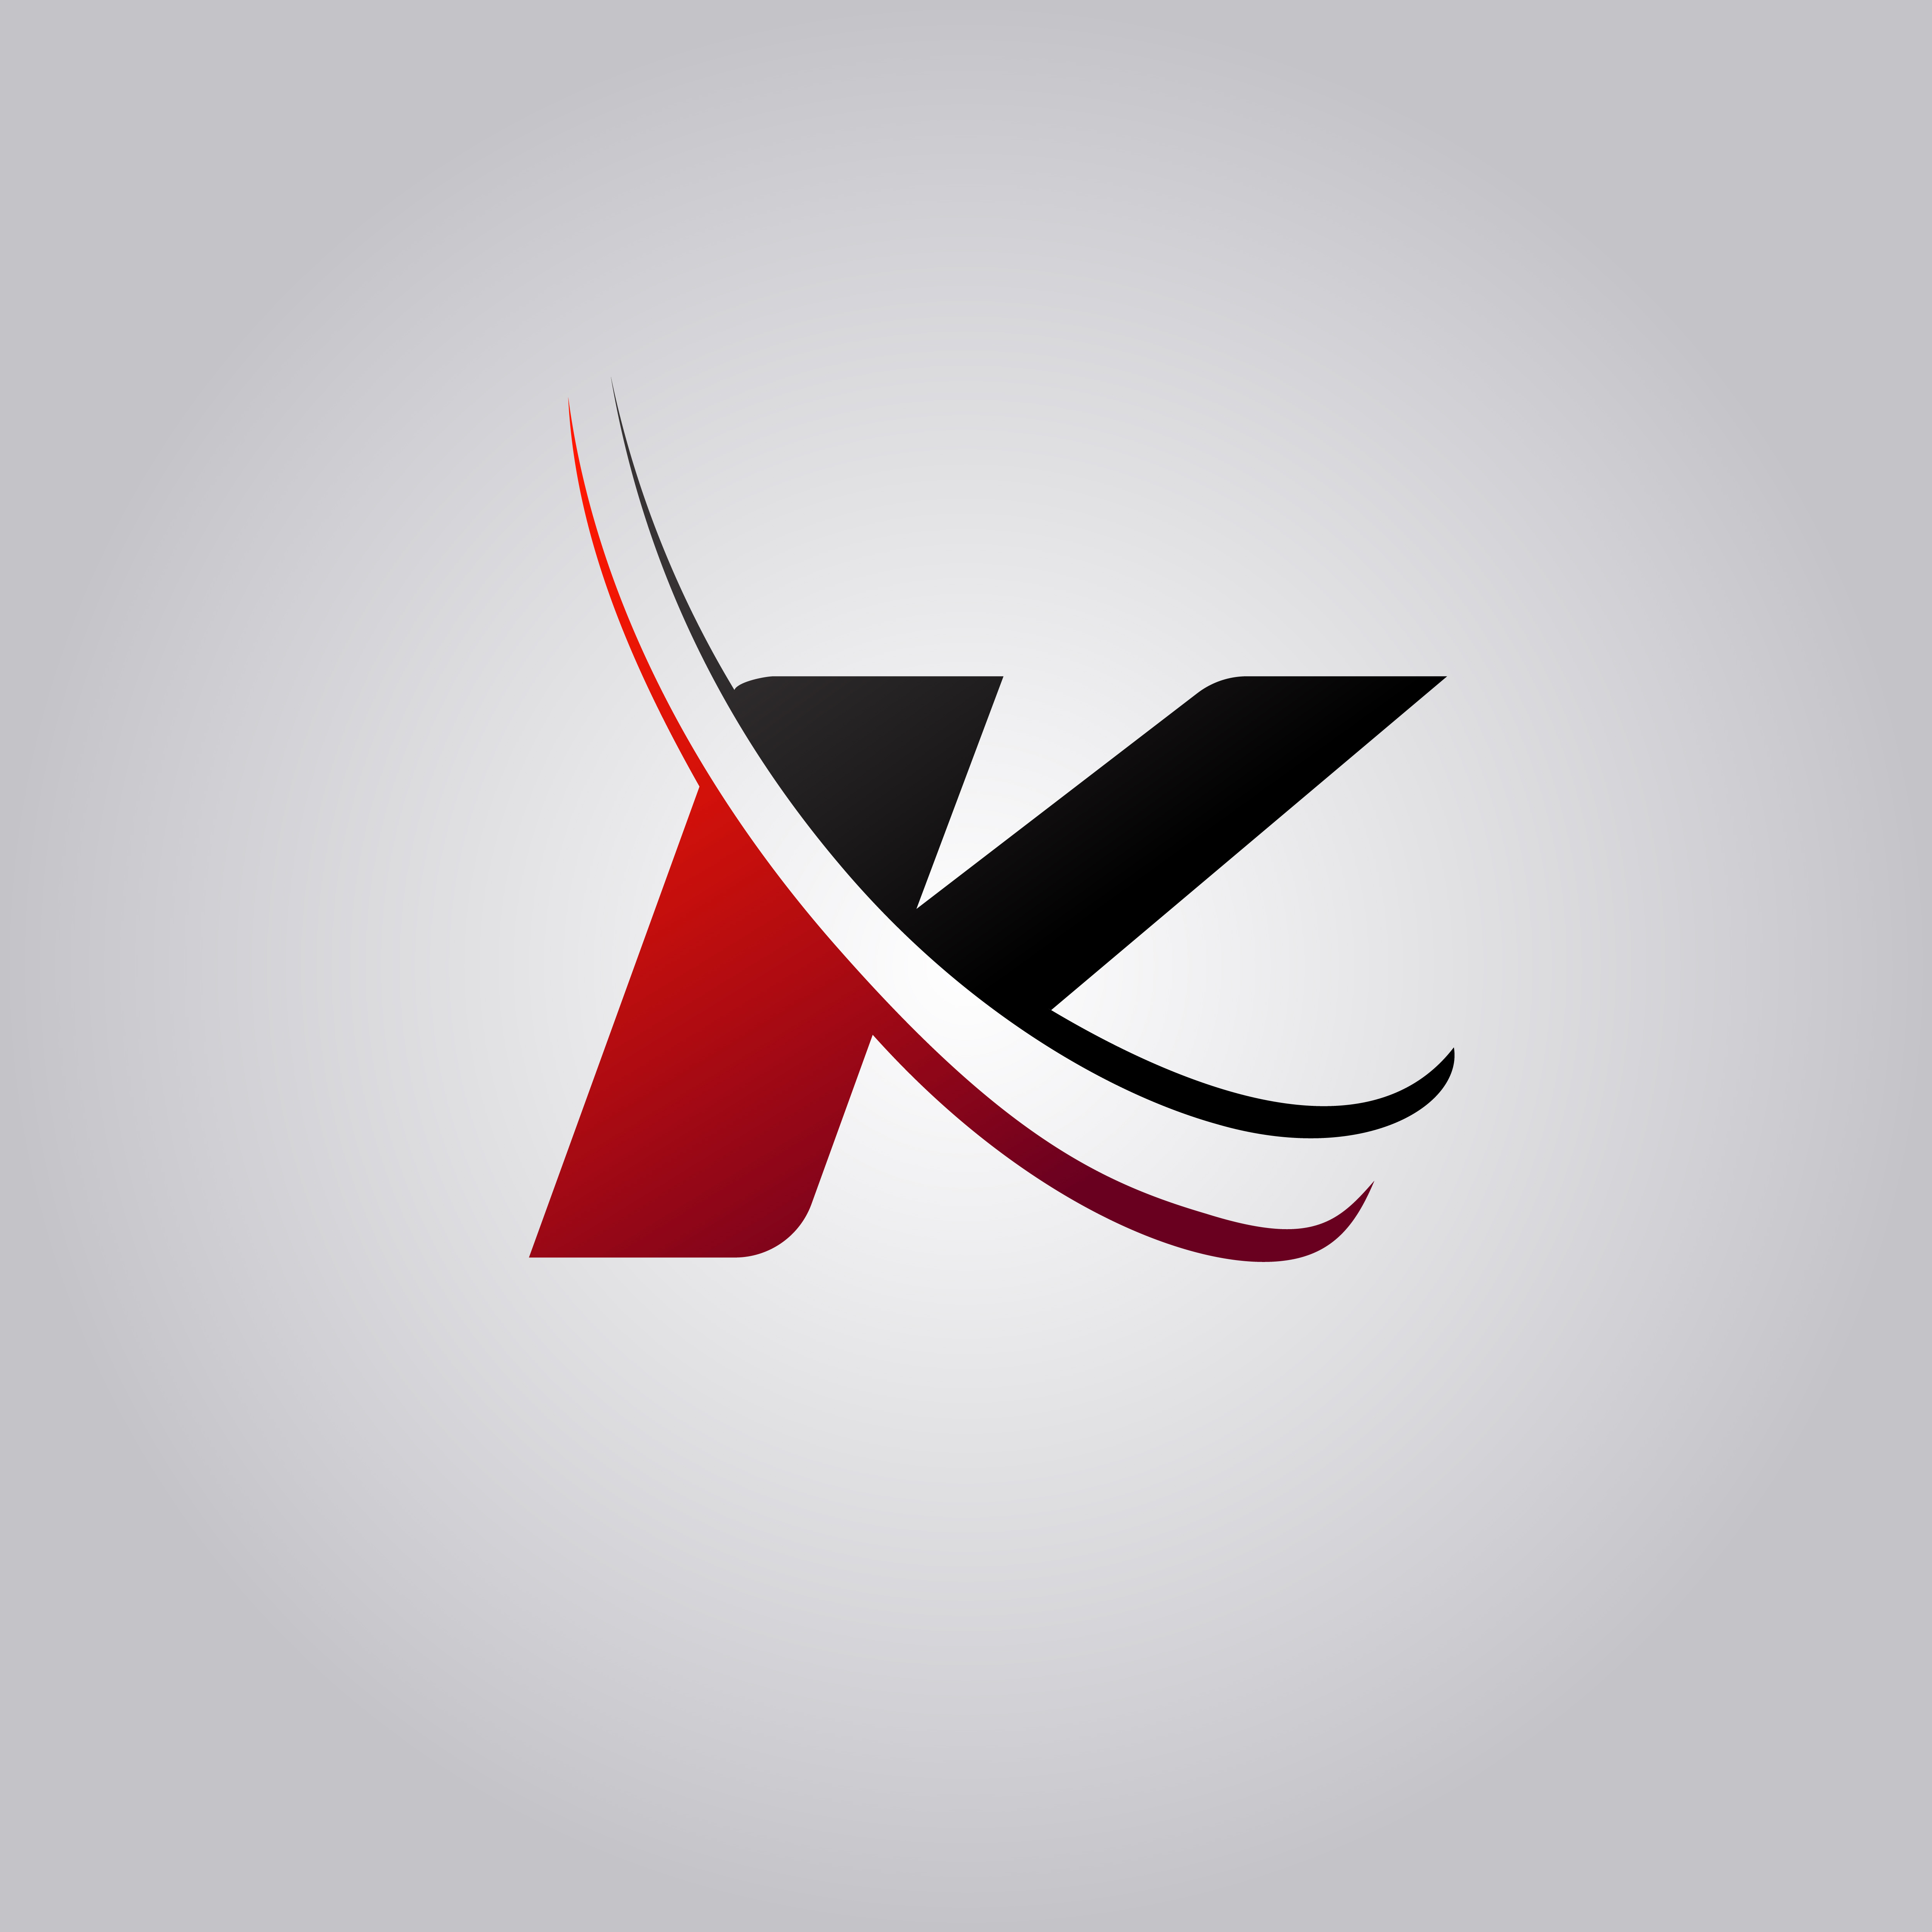 Initial K Letter Logo With Swoosh Colored Red And Black